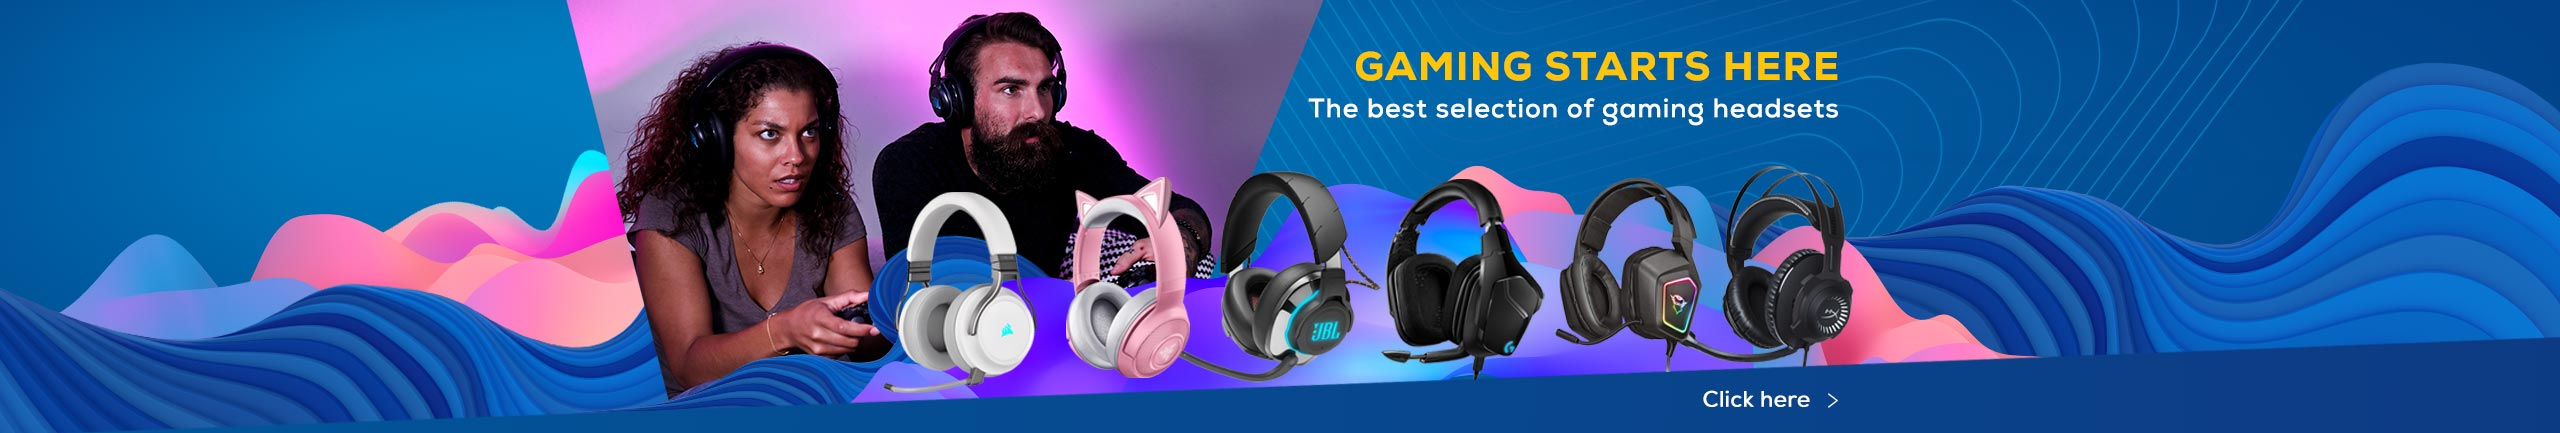 NPL gaming products: The best selection of gaming headsets